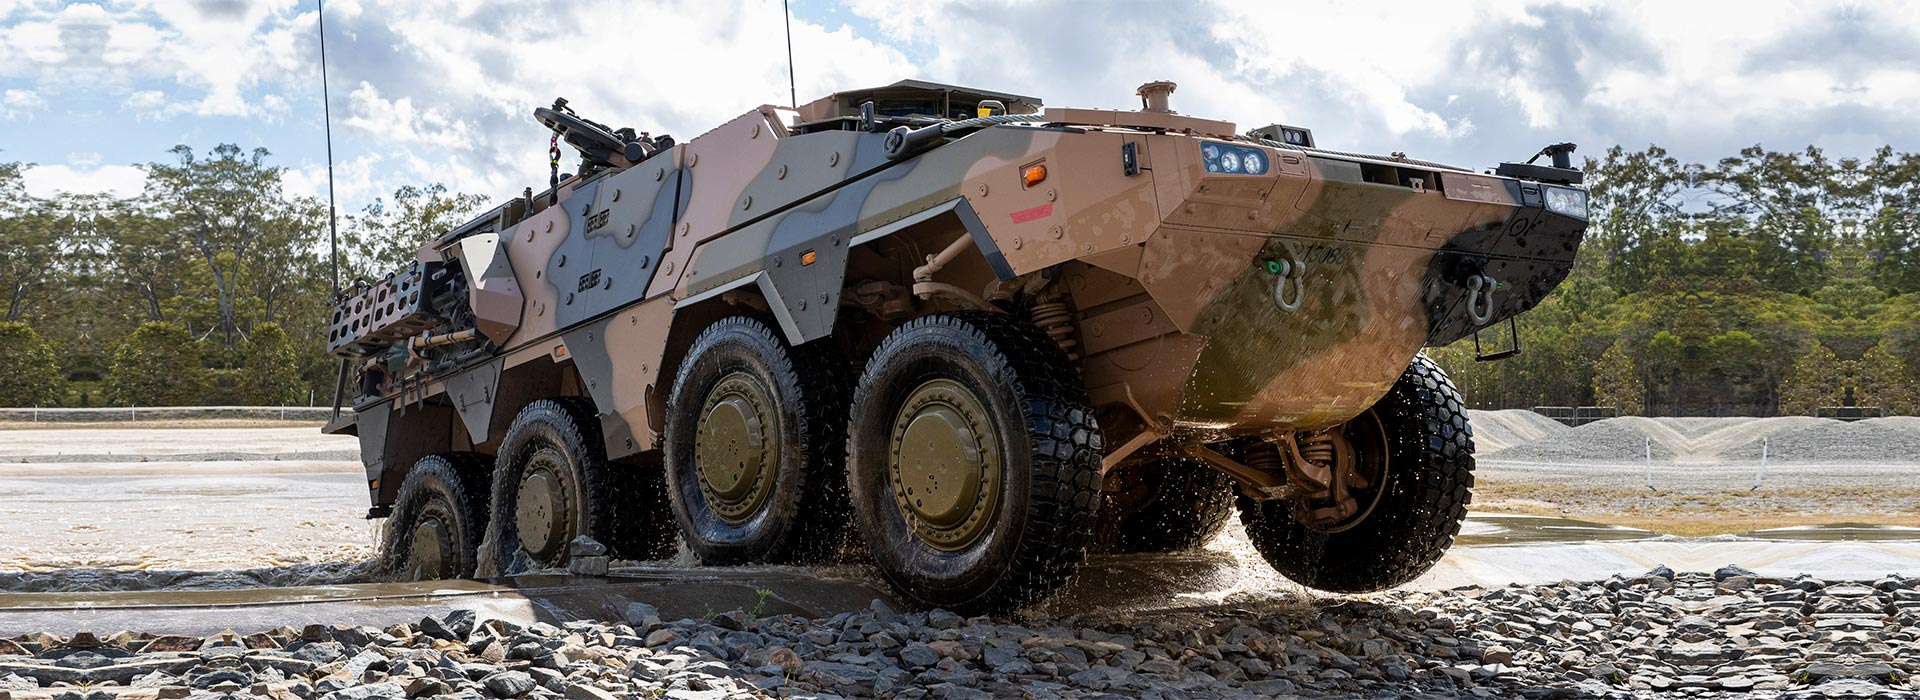 Land Combat Vehicle System - major project